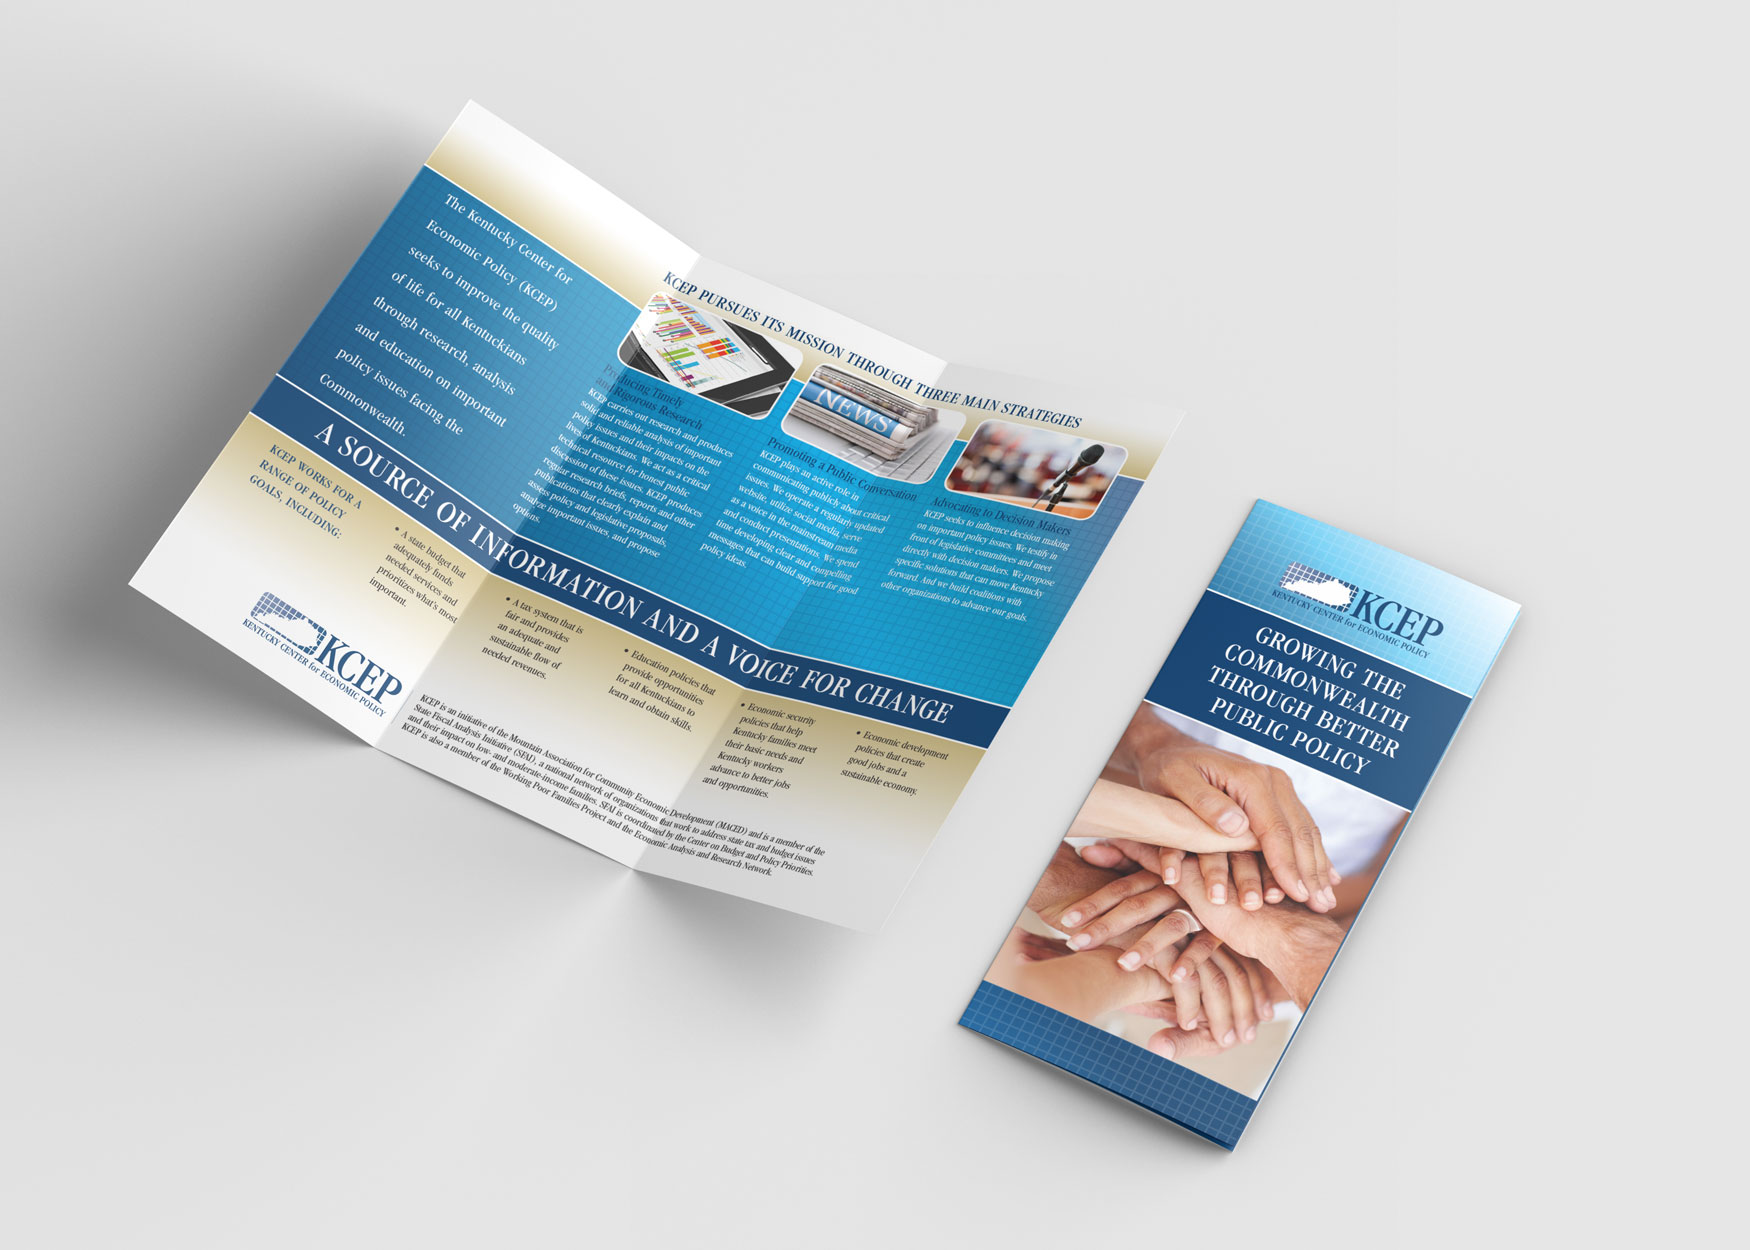 Trifold brochure for KCEP